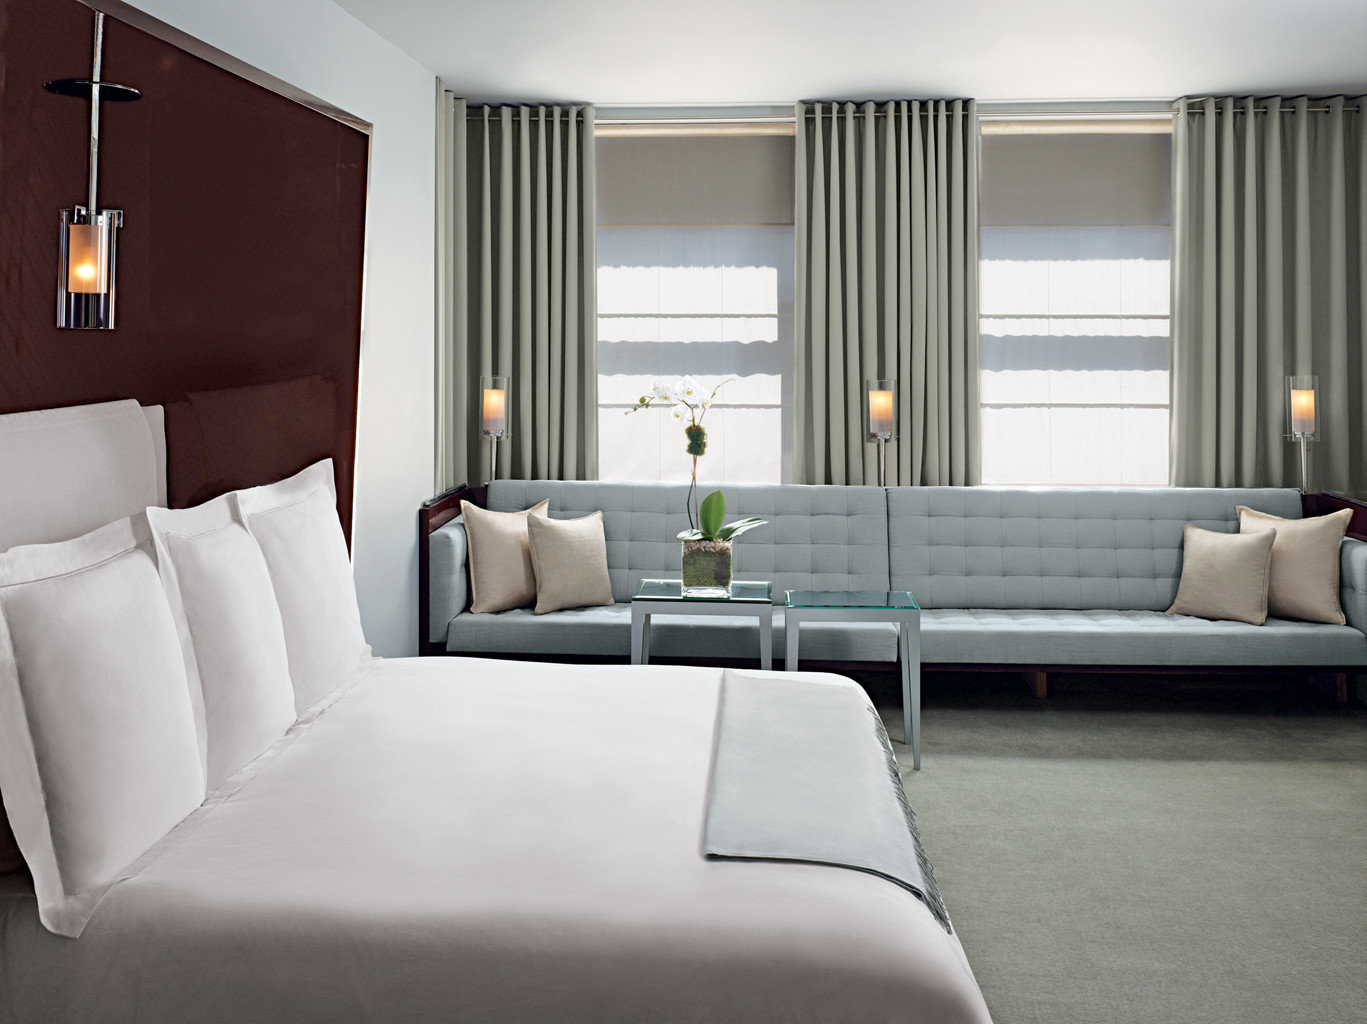 Bedroom Boutique City Hotels Luxury Trip Ideas sofa property living room white Suite home couch condominium pillow